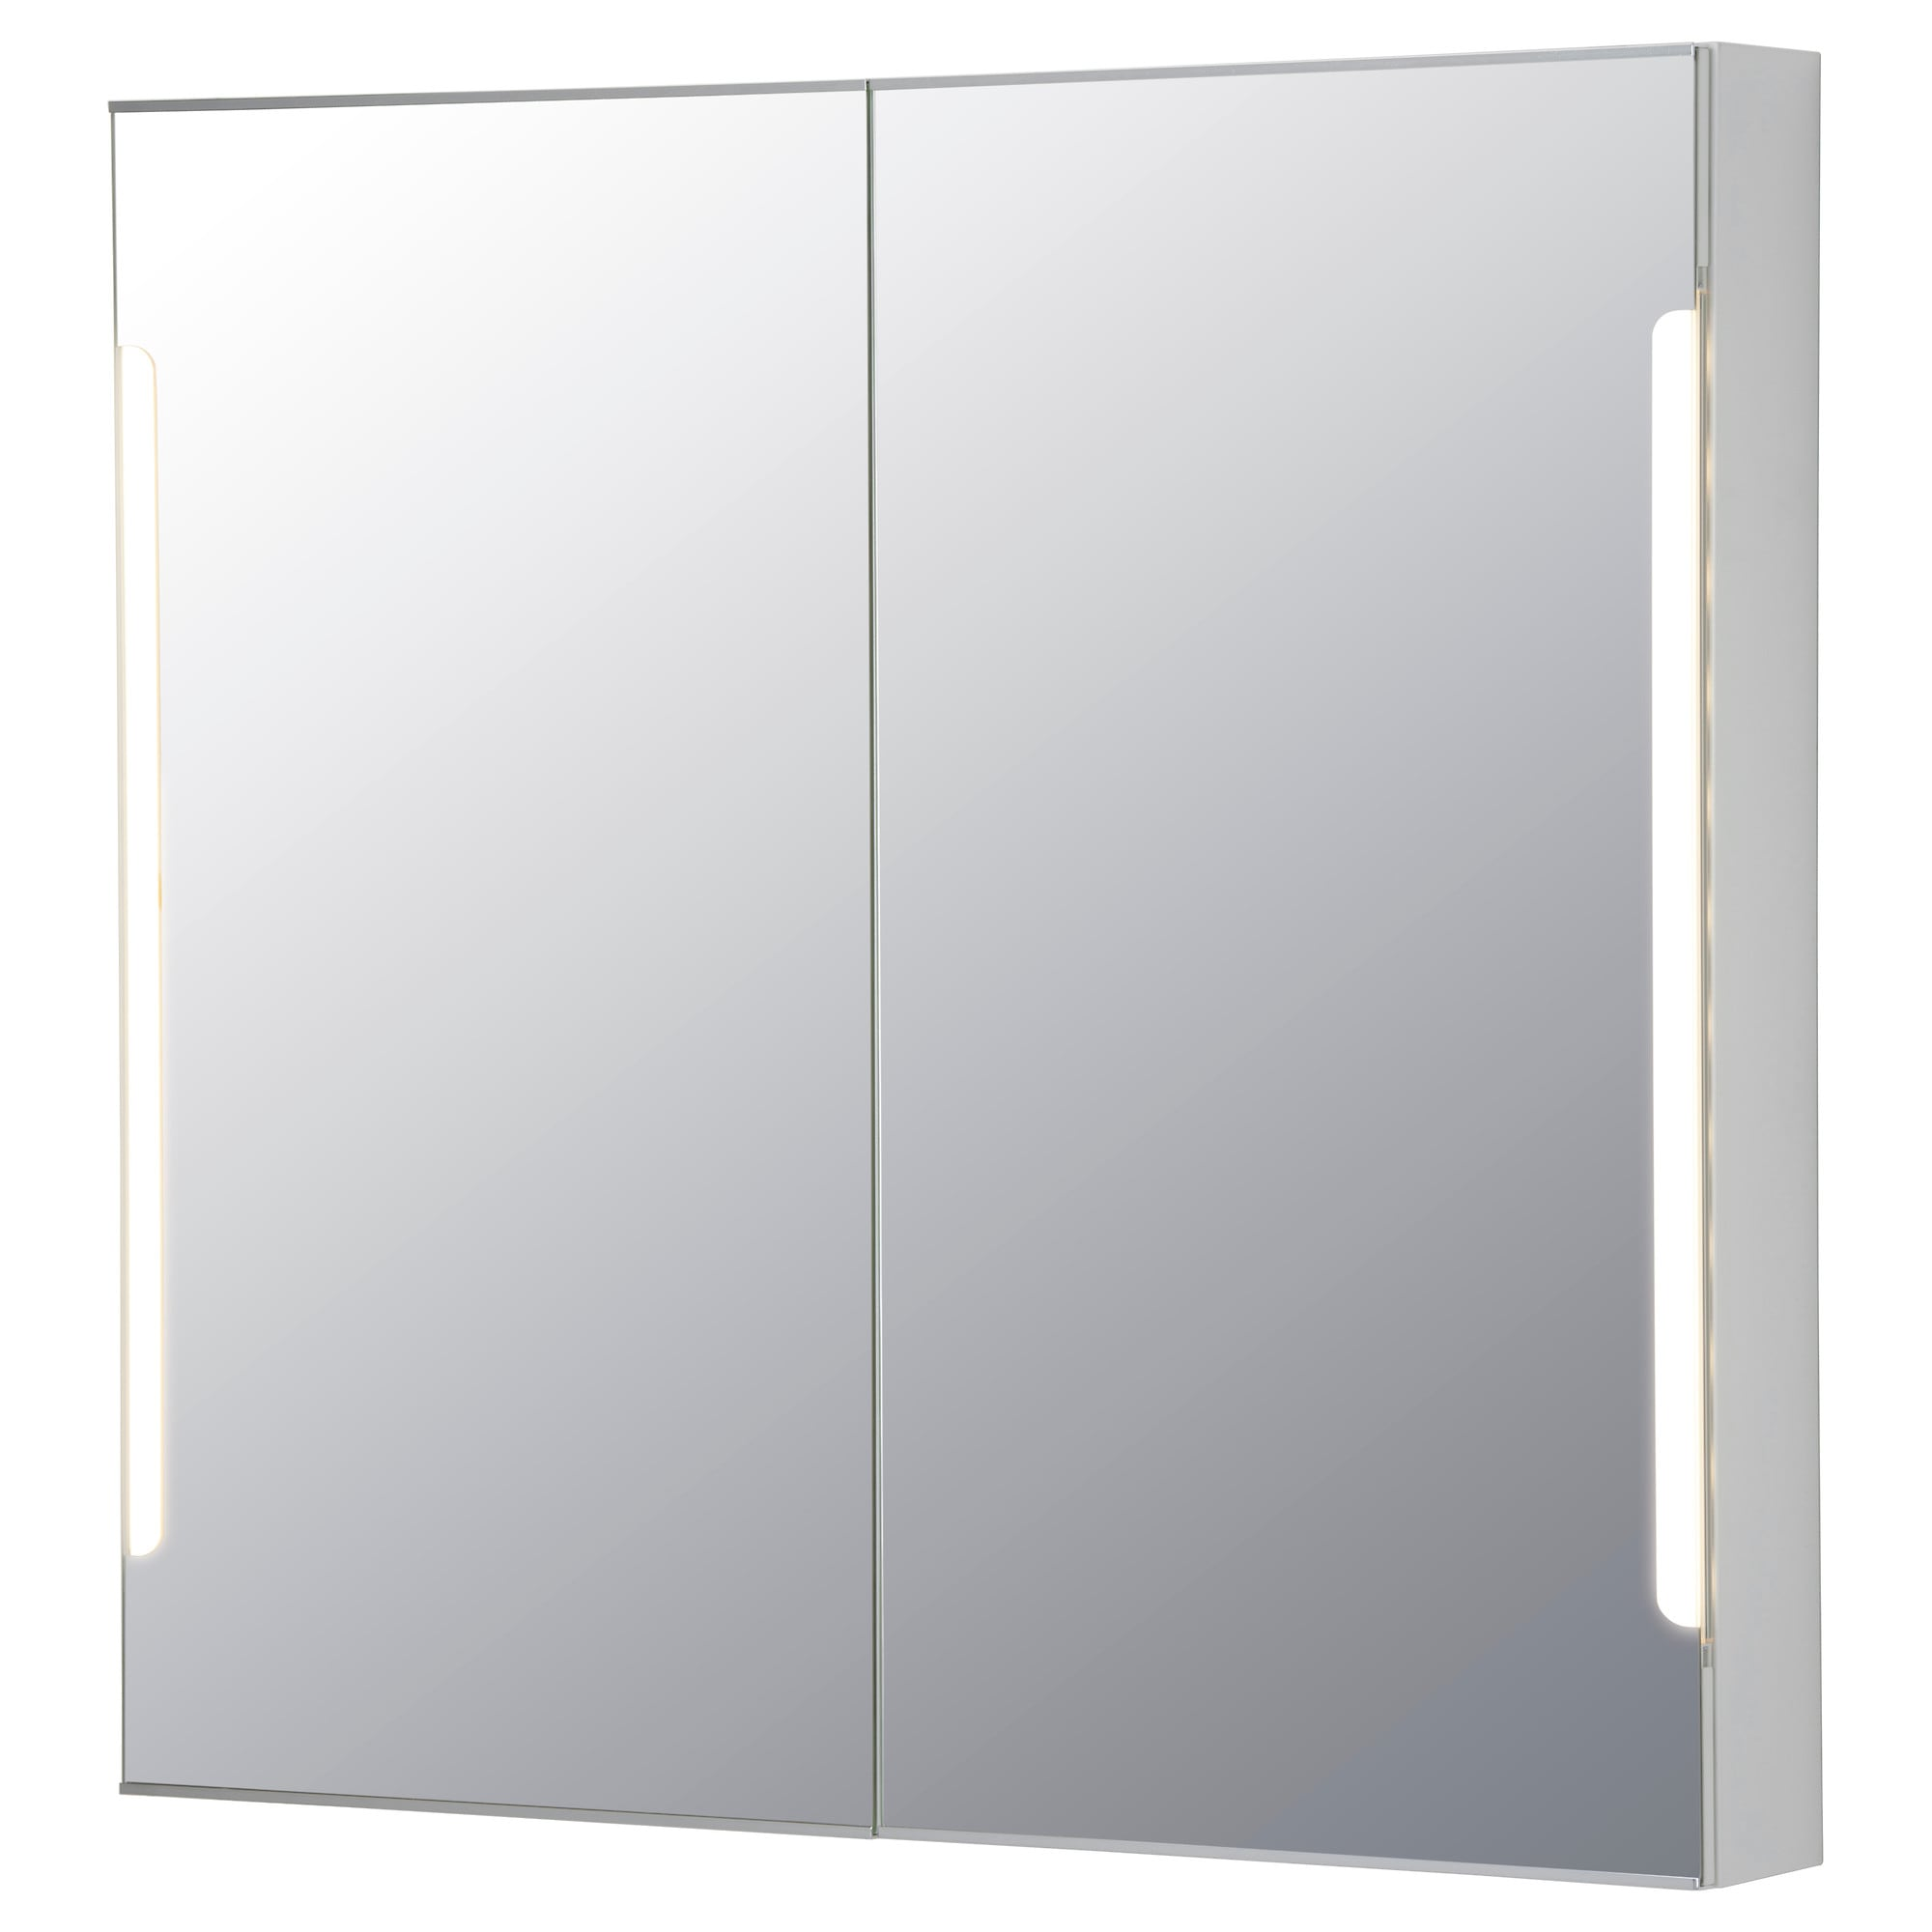 STORJORM Mirror cabinet w 2 doors & light IKEA